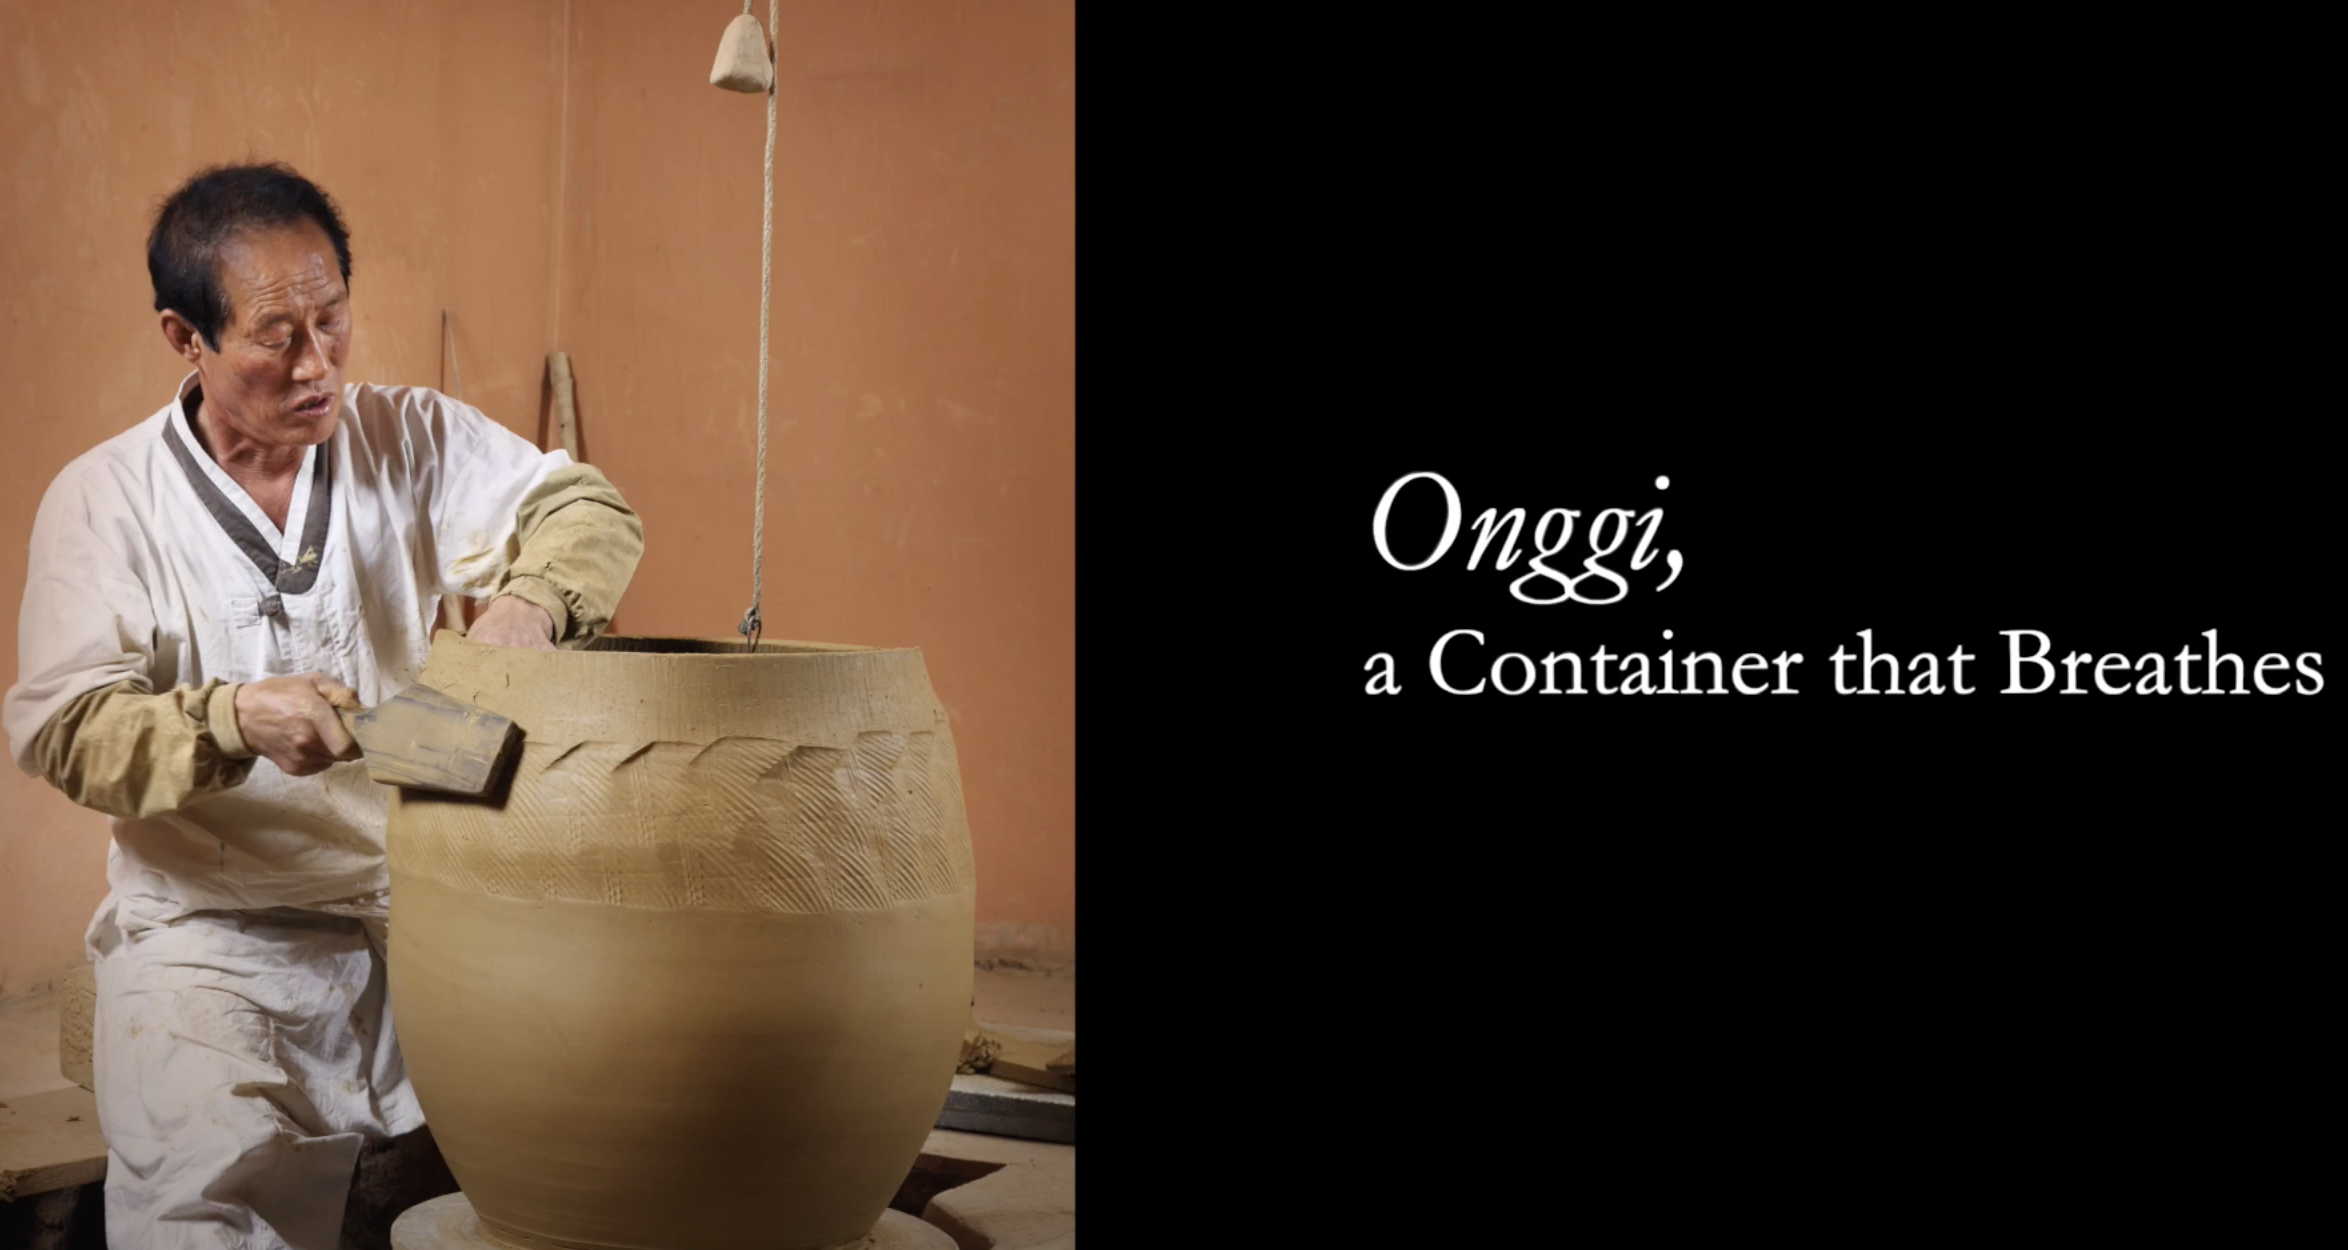 Onggi a Container that Breathes (옹기, 숨결 저장소) image